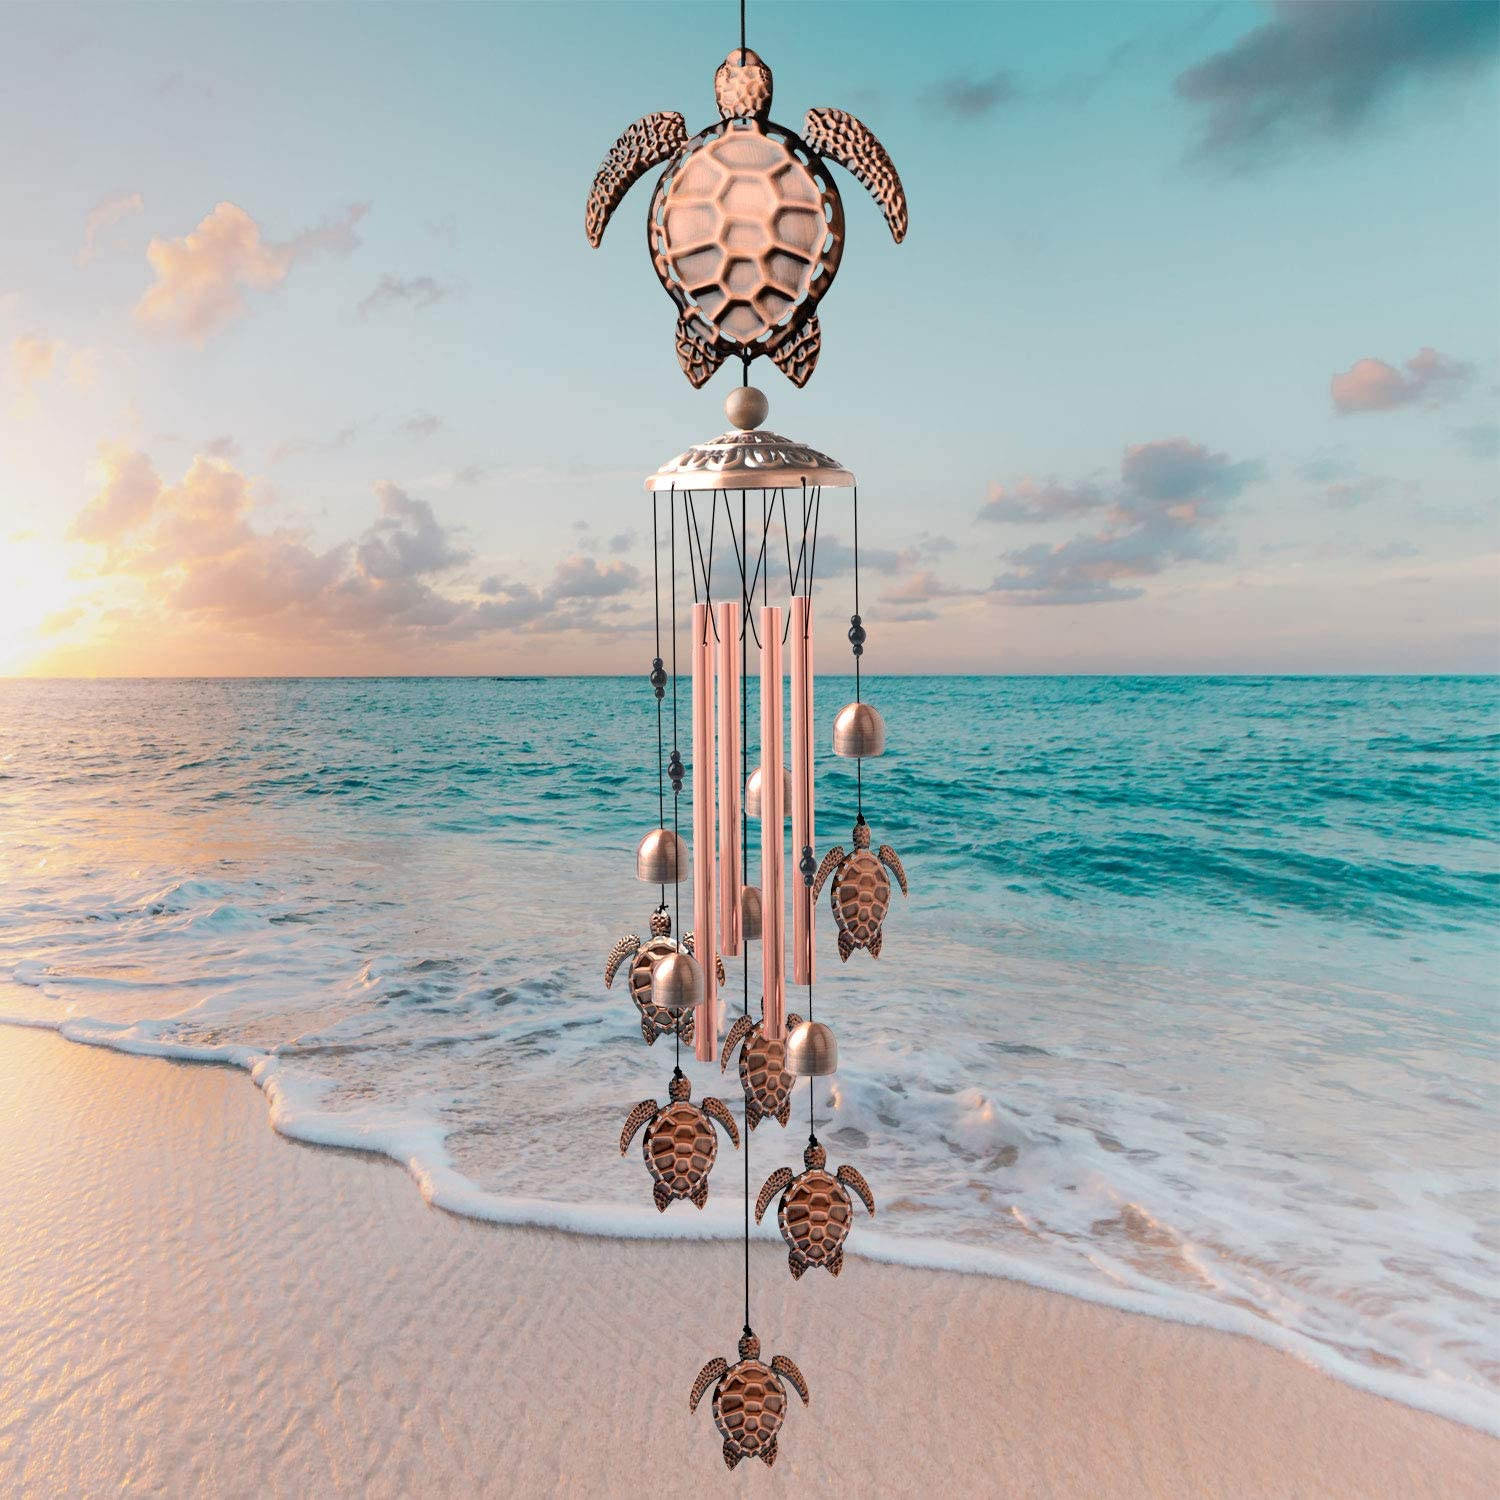 JOBOSI Tortoise Wind Chimes, Wind Chimes Outdoor, Copper Wind Chime, Memorial Wind Chimes, Wind Bell, Garden Yard Decor, Gifts for mom, Gifts for Grandma, Thanksgiving Gifts Garden Gift